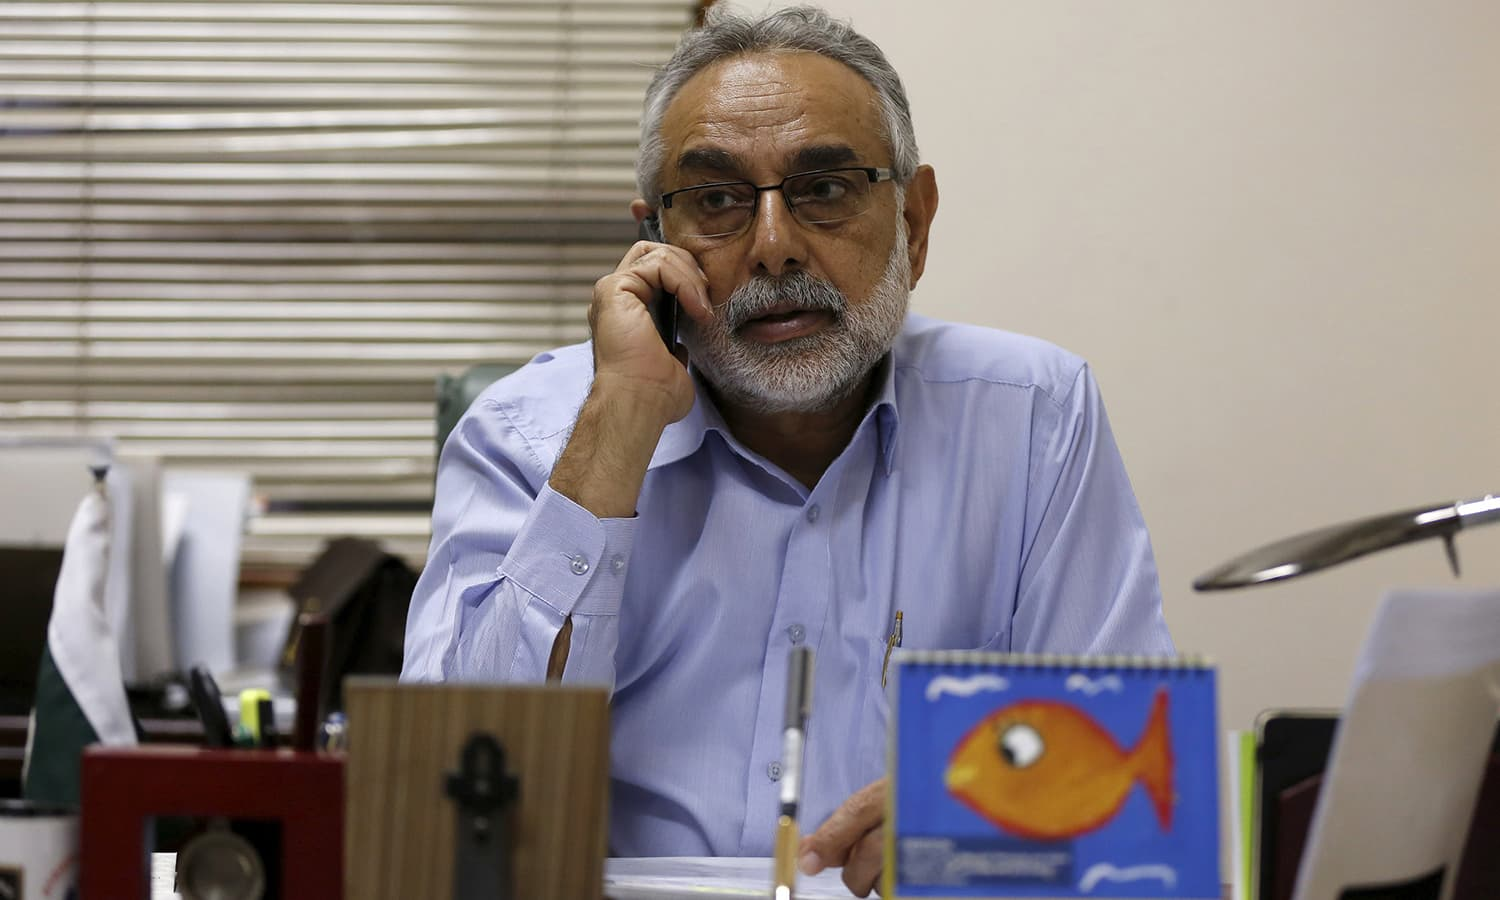 Zubair Habib, Chief of Citizen Police Liaison Committee (CPLC) talks on mobile phone at his office in Karachi, February 9, 2016. — Reuters